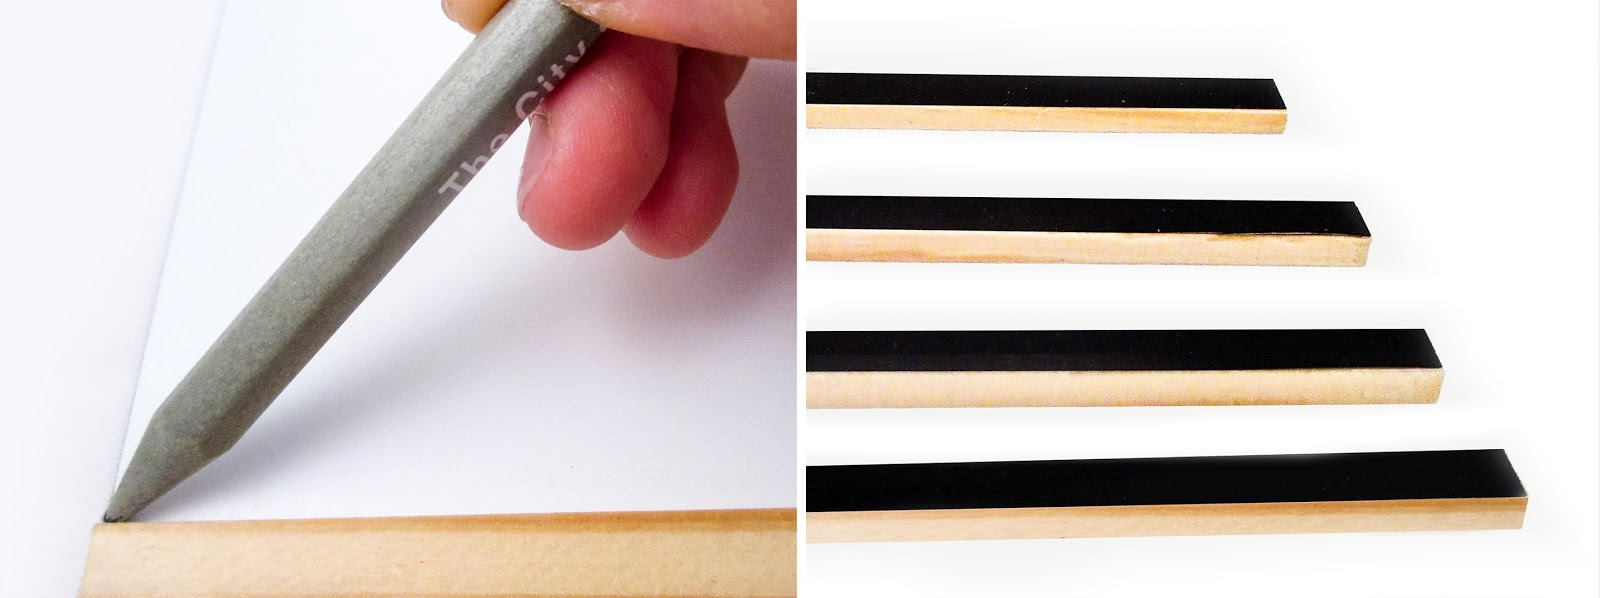 trace the length of the wooden sticks onto the adhesive magnet sheet four times then cut them out peel off the adhesive and stick onto each of your